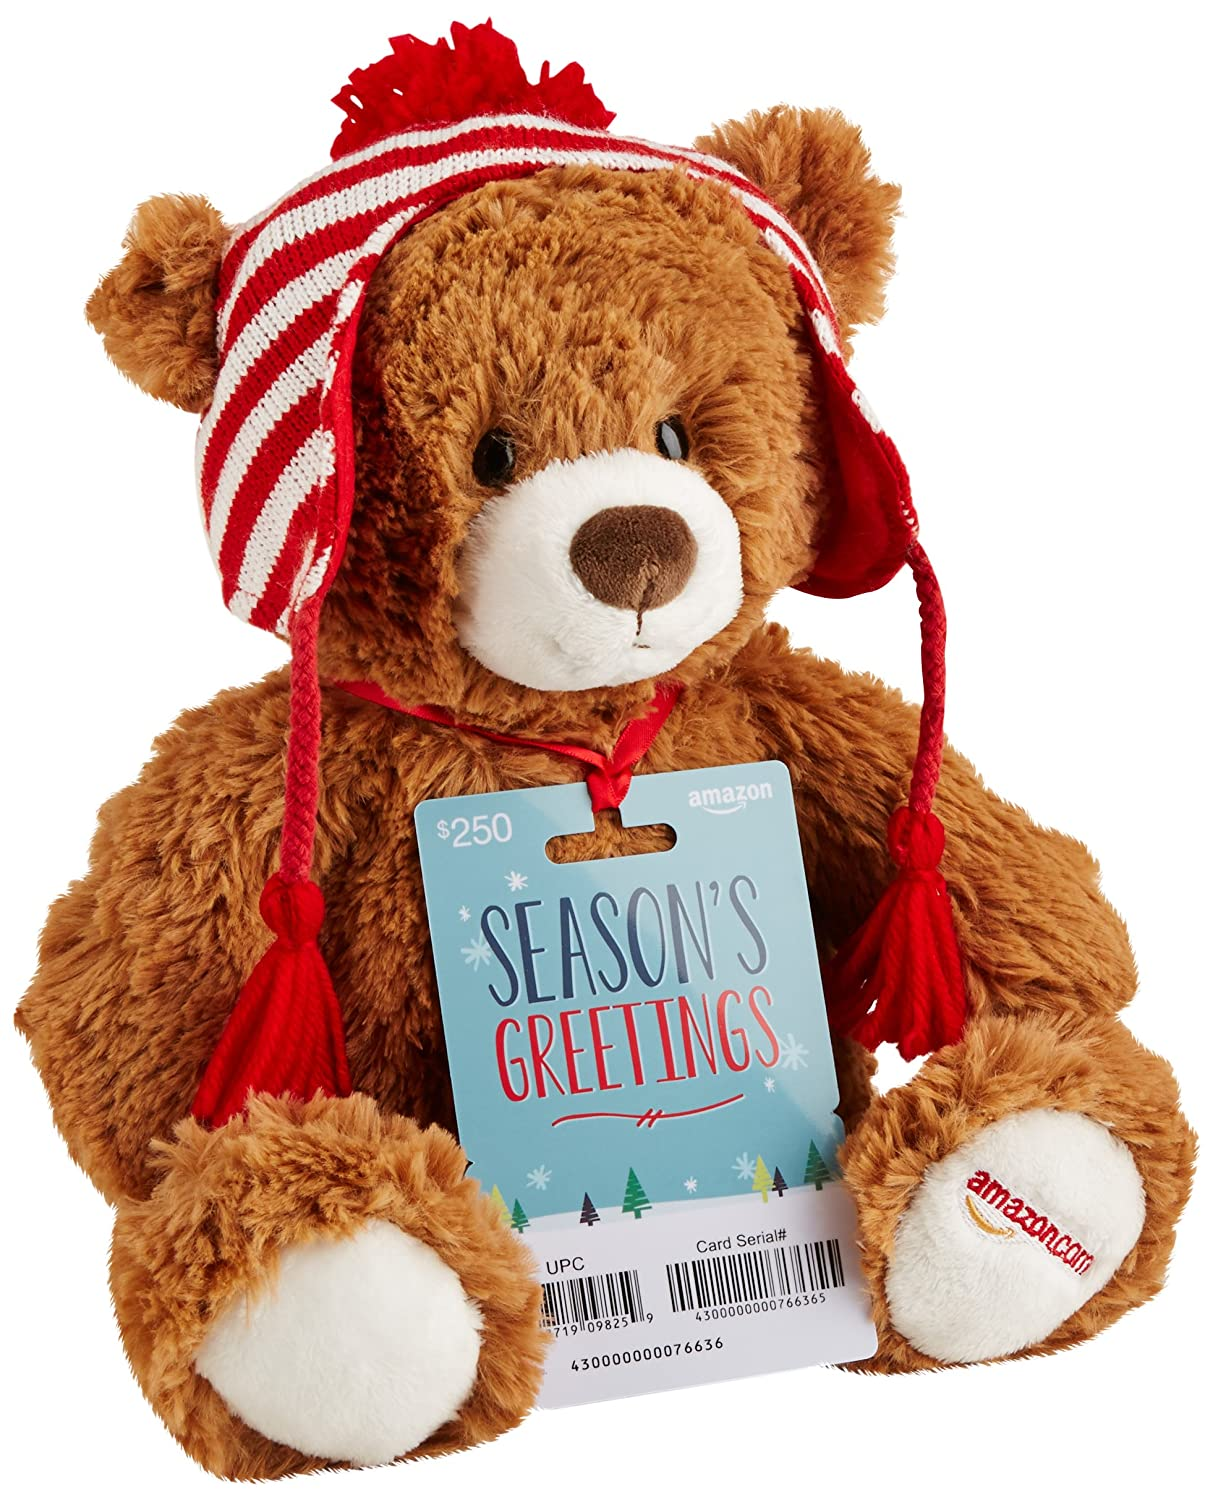 Amazon.com Gift Cards - With Limited Edition Gund Teddy Bear - Free One-Day Shipping